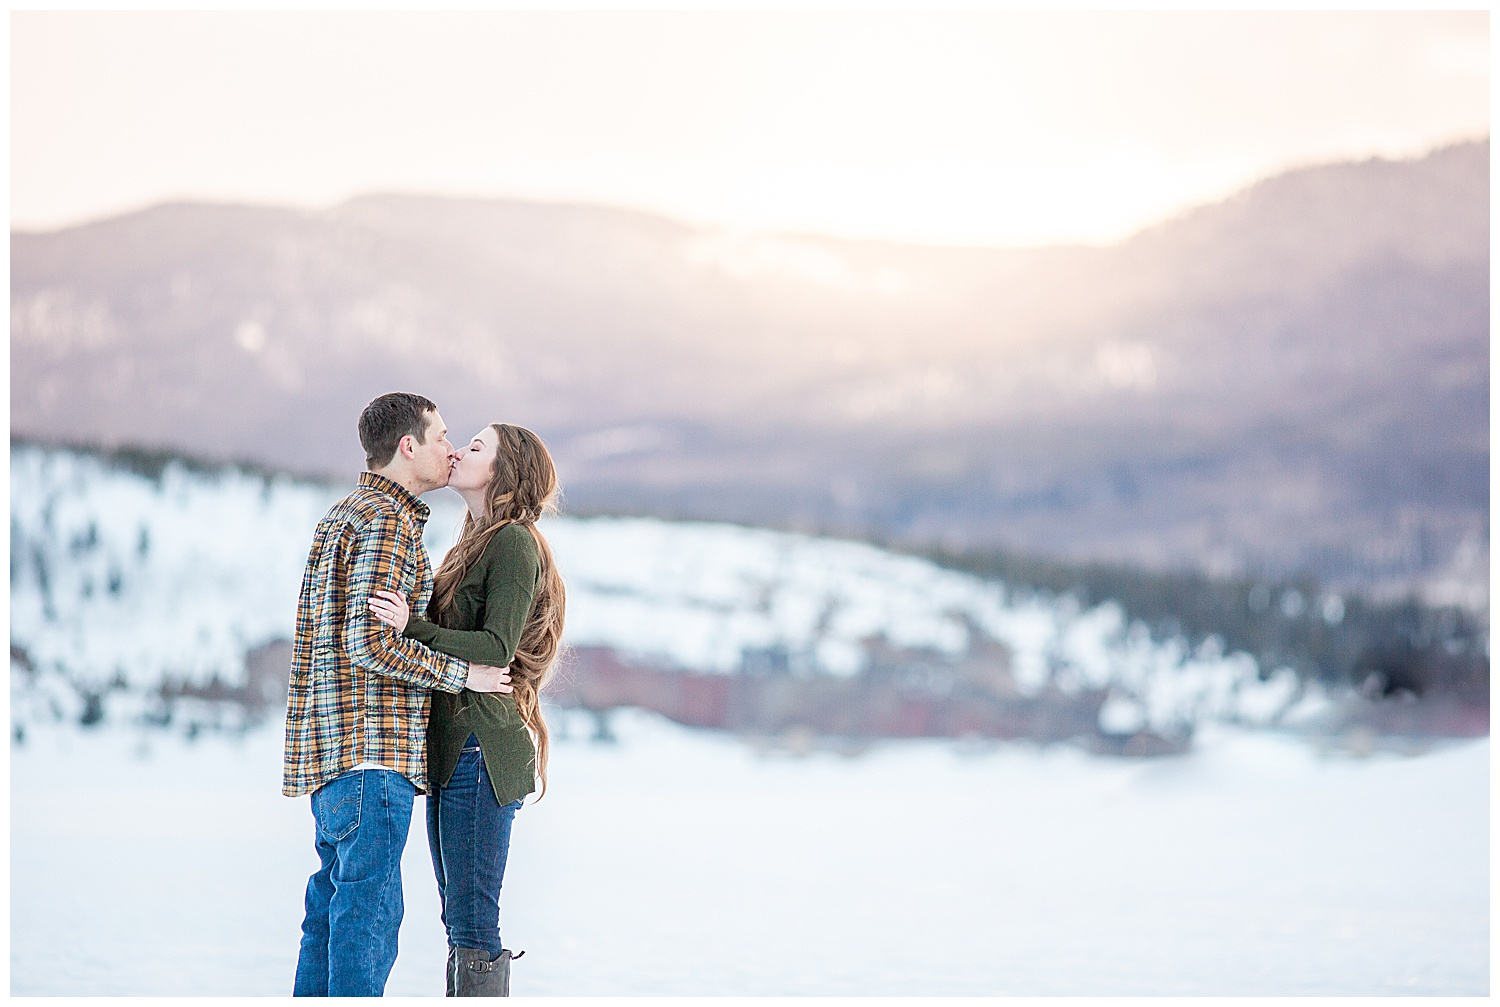 Winter-Breckenridge-Colorado-Engagement-Session_0034.jpg